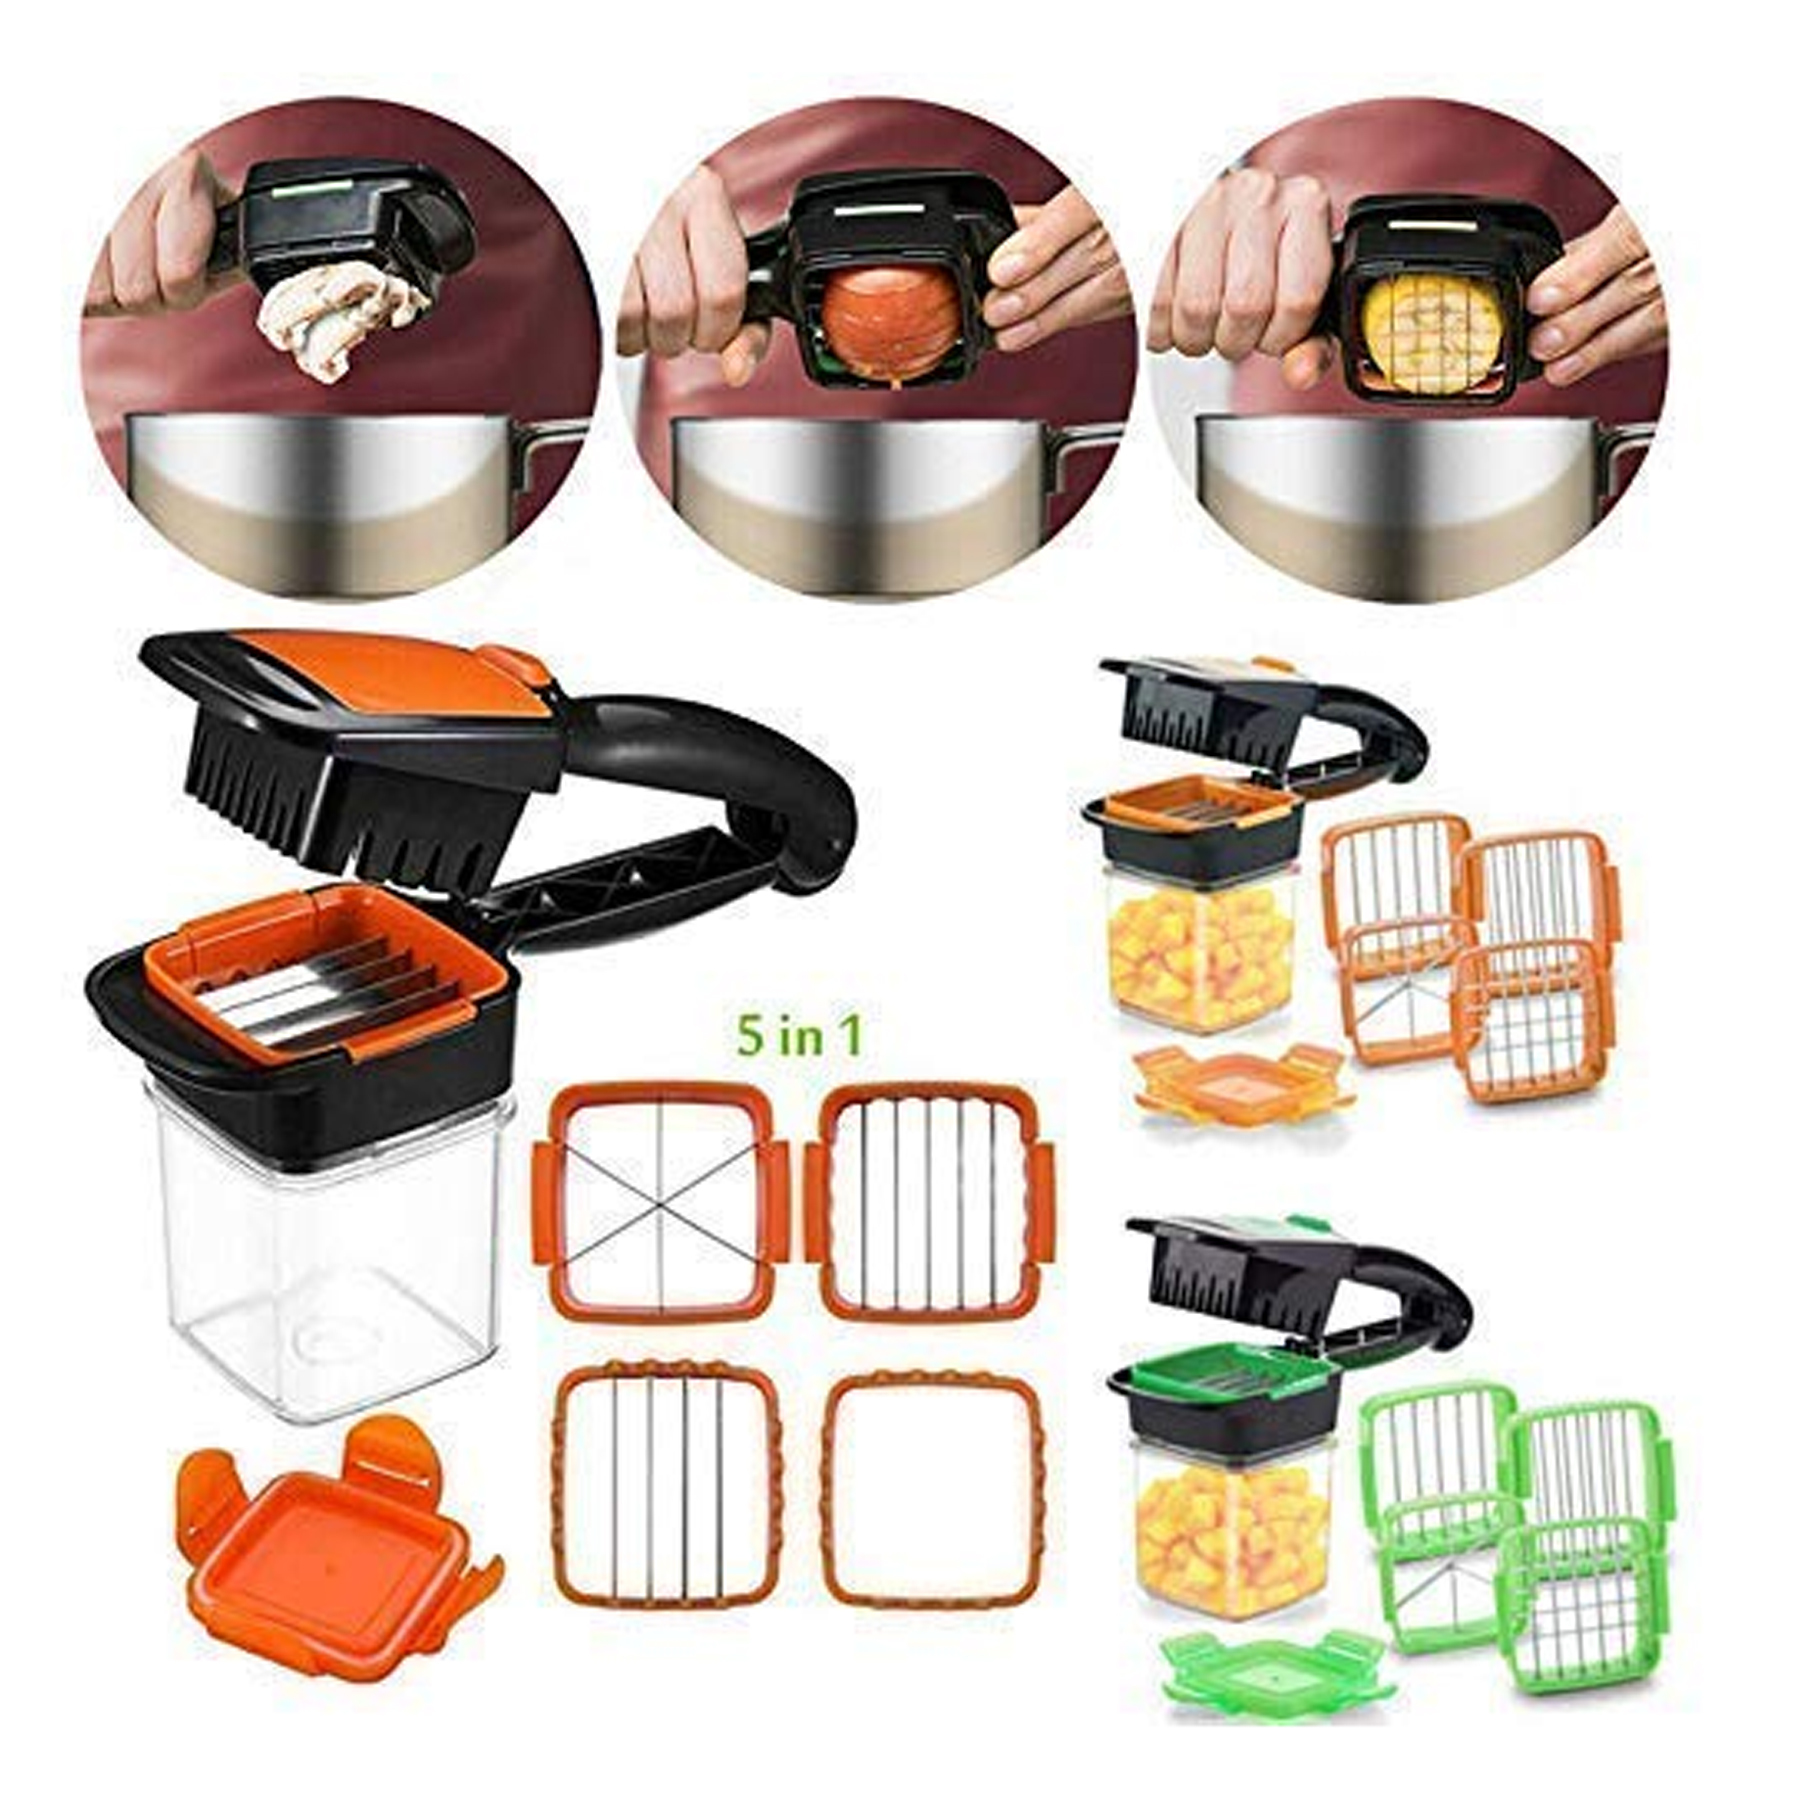 5 in 1 Multifunction Vegetable Cutter, Manual Vegetable Quick Dicer Fruit Chopper Slicer